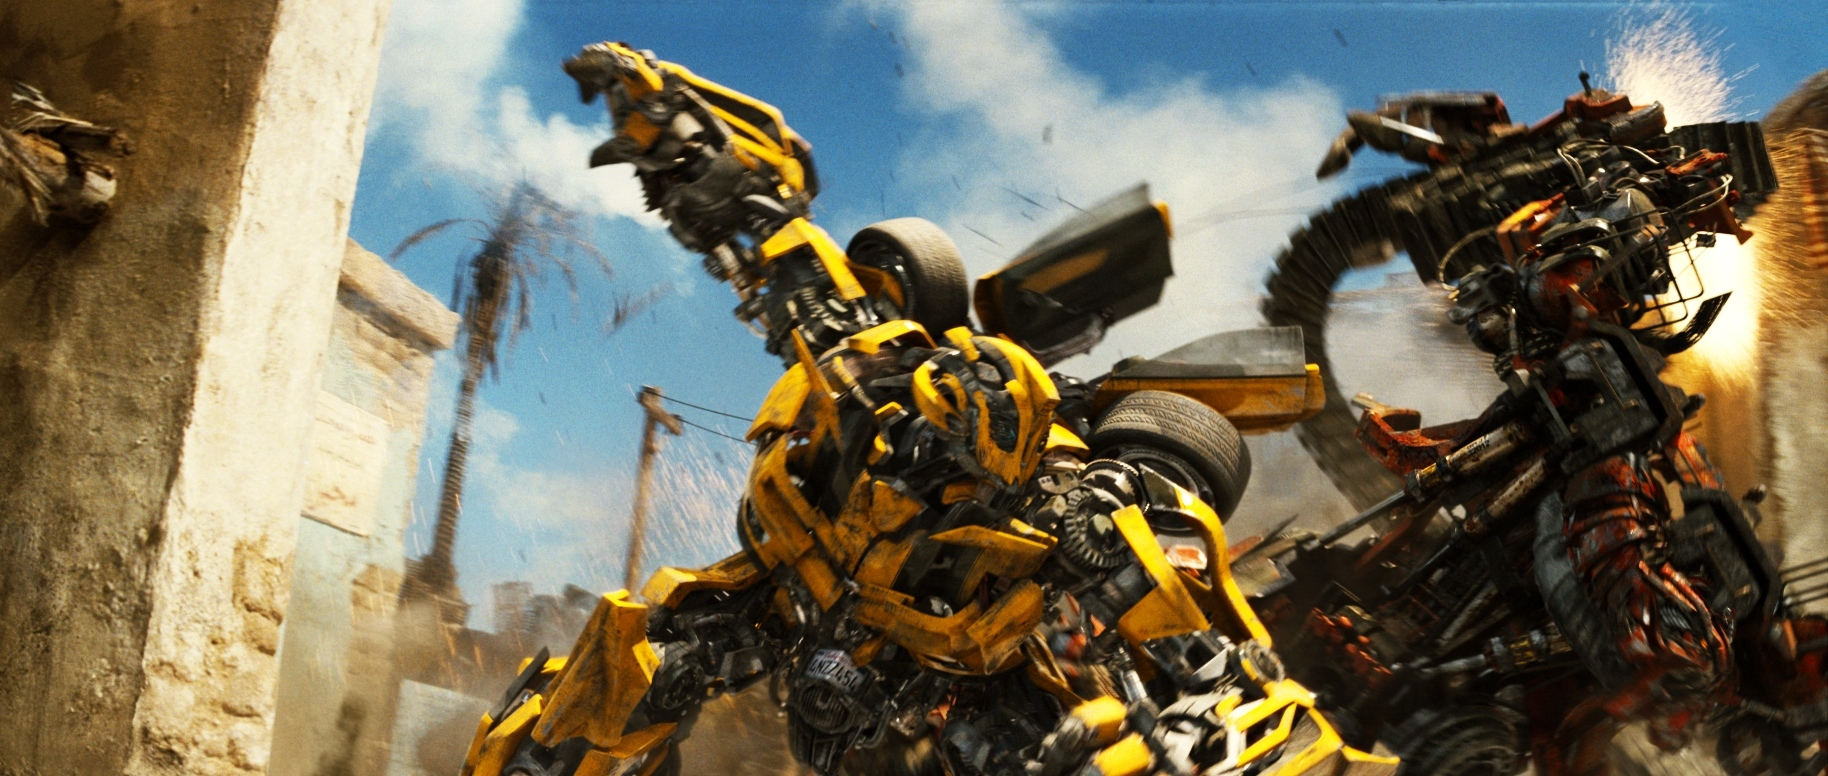 Transformers: Revenge of the Fallen — Bumblebee vs Rampage